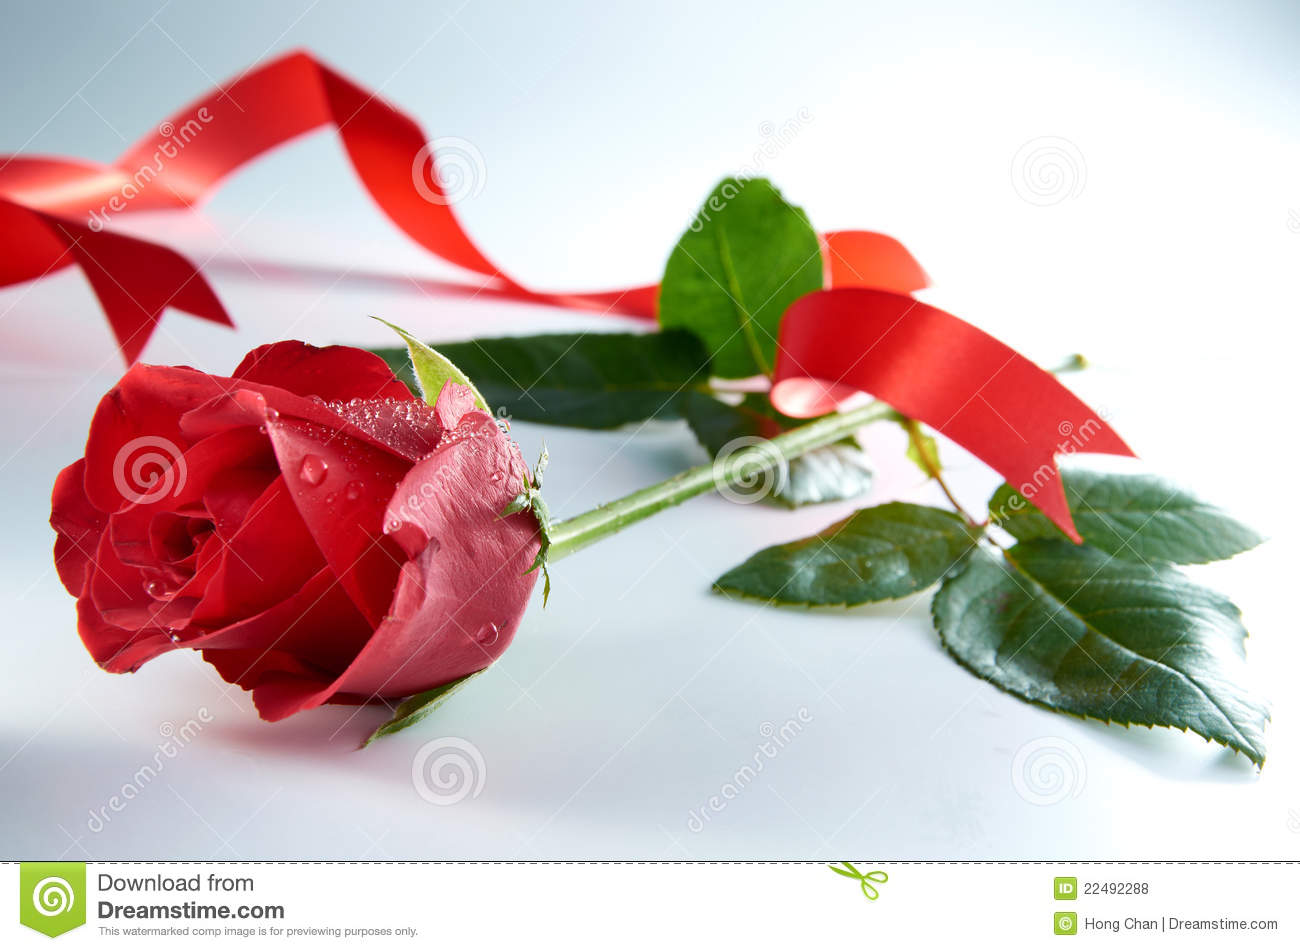 Beautiful Single Red Rose Flower Isolated Royalty Free: Red Rose Flower With Red Ribbon Royalty Free Stock Photos